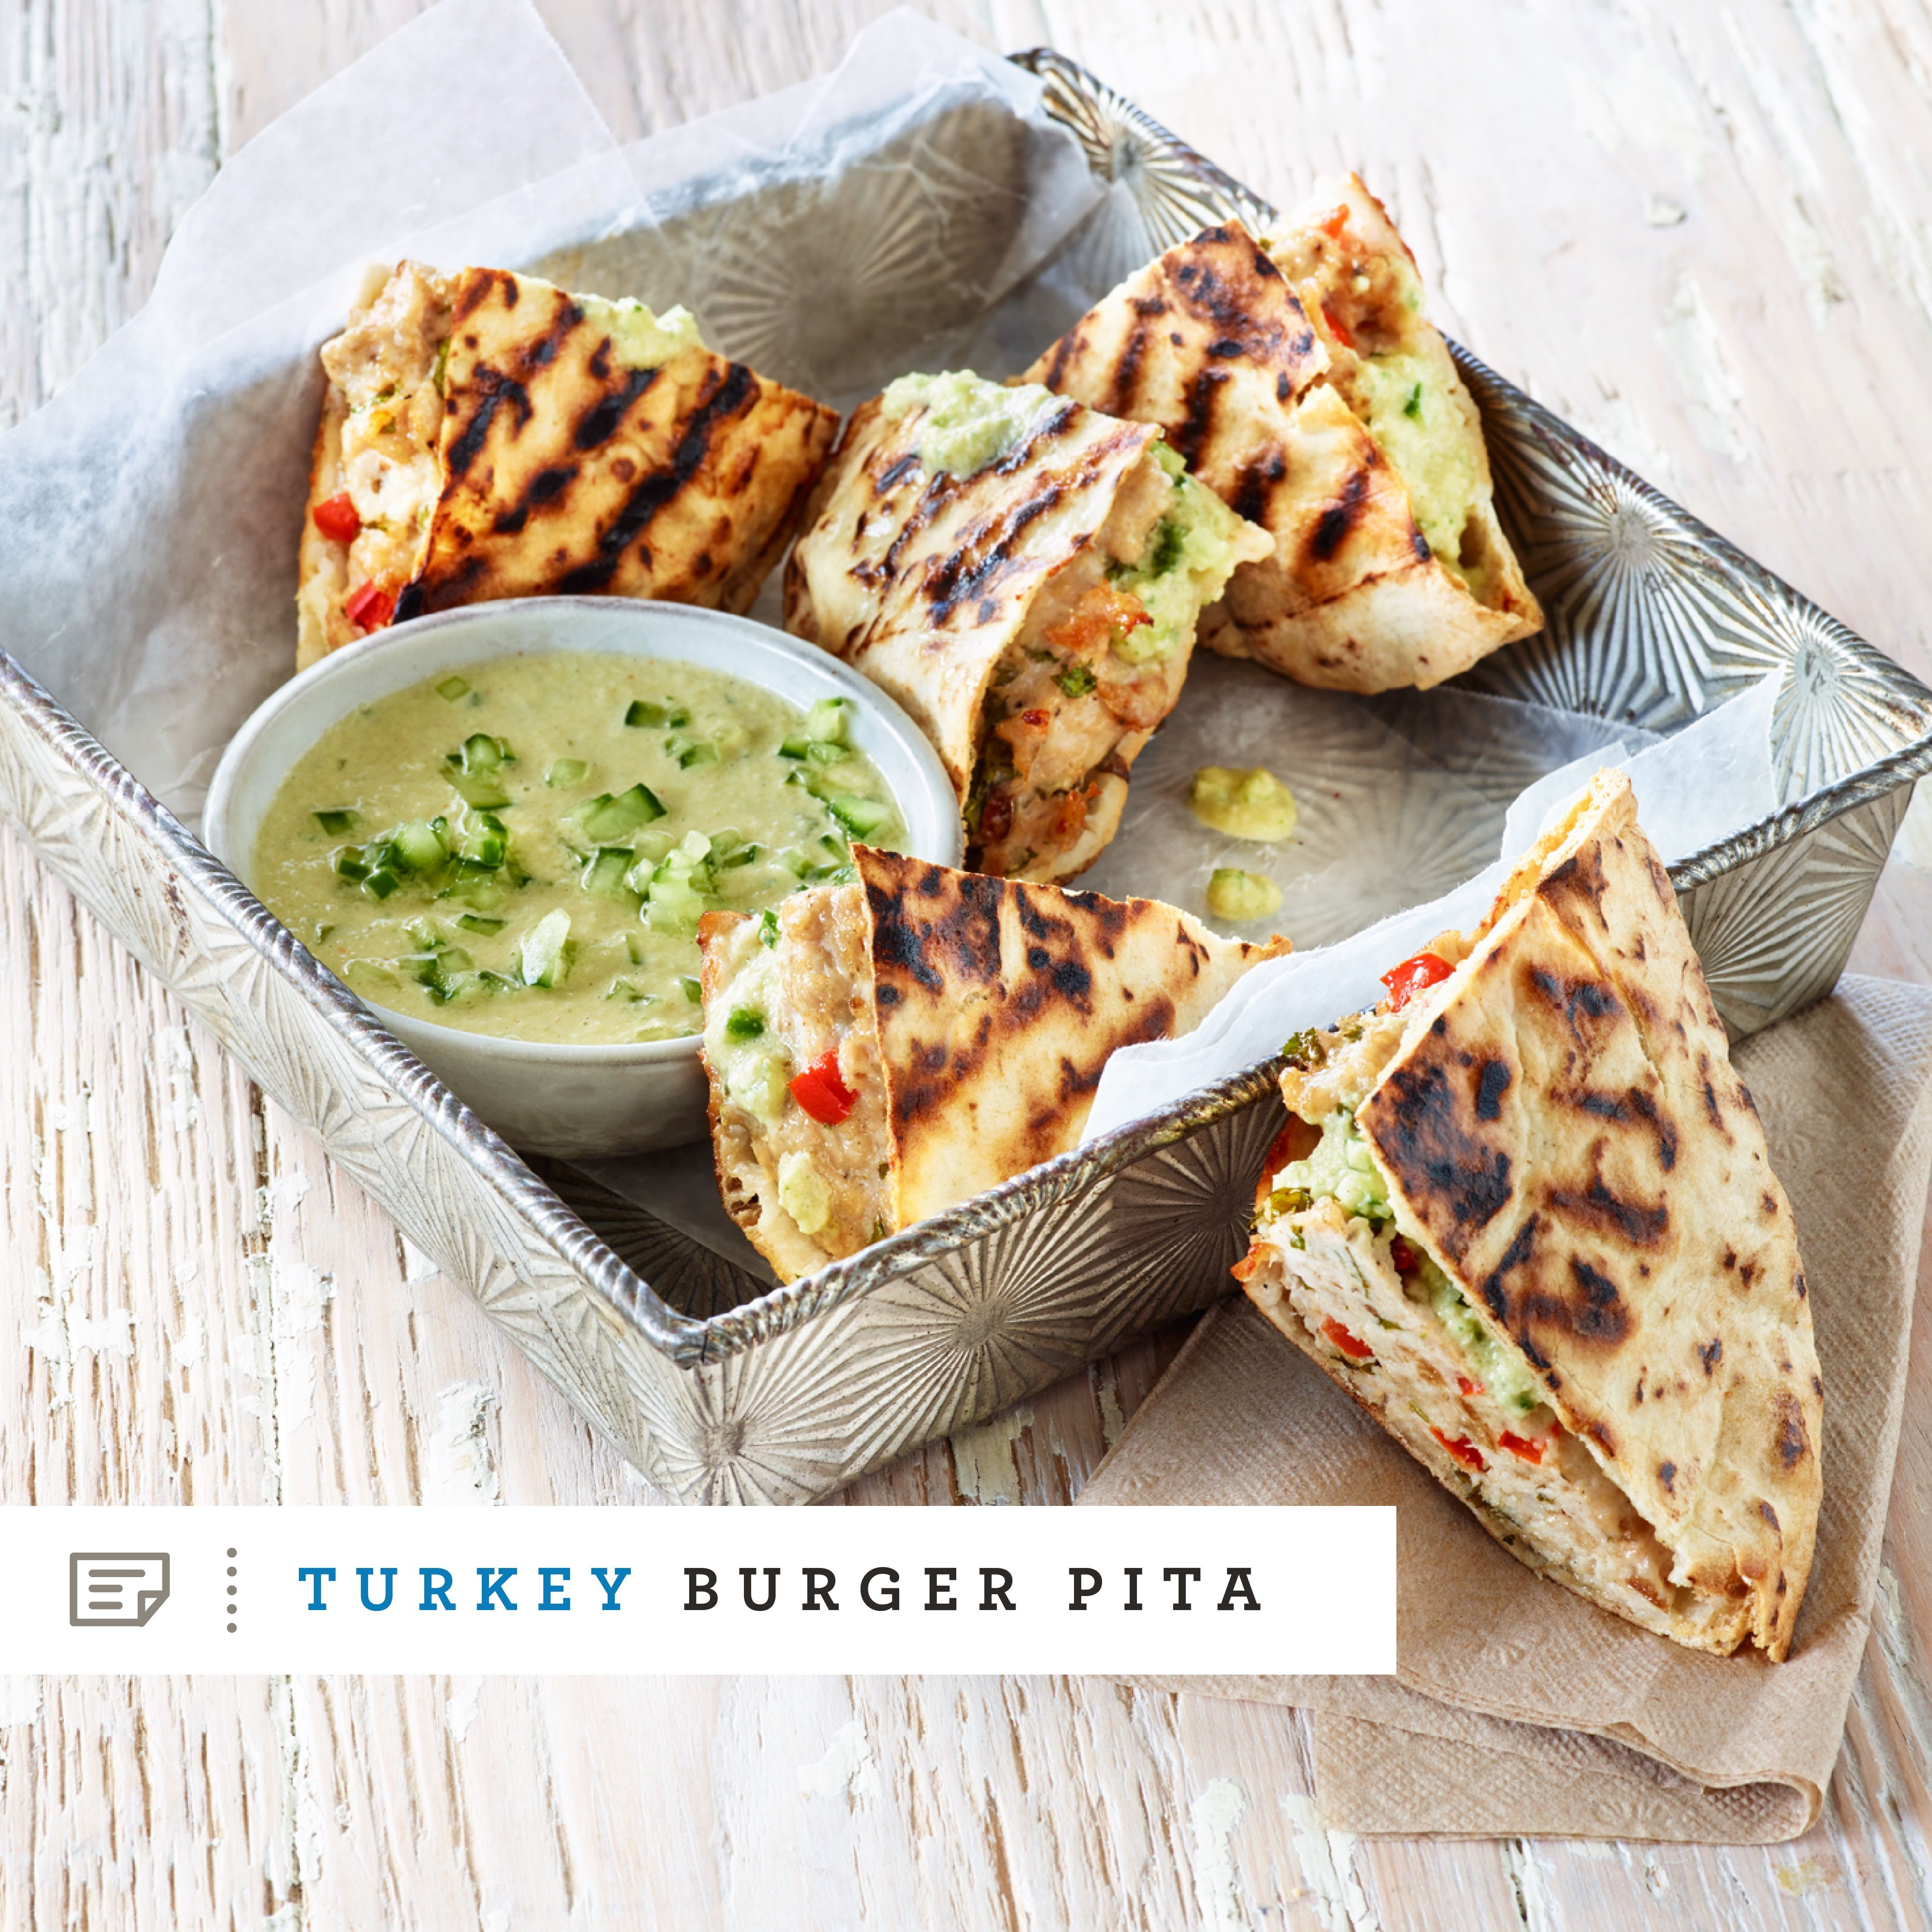 A filling lunch you can feel good about. Turkey Burger Pita gets a zesty zing from lemon and tahini.